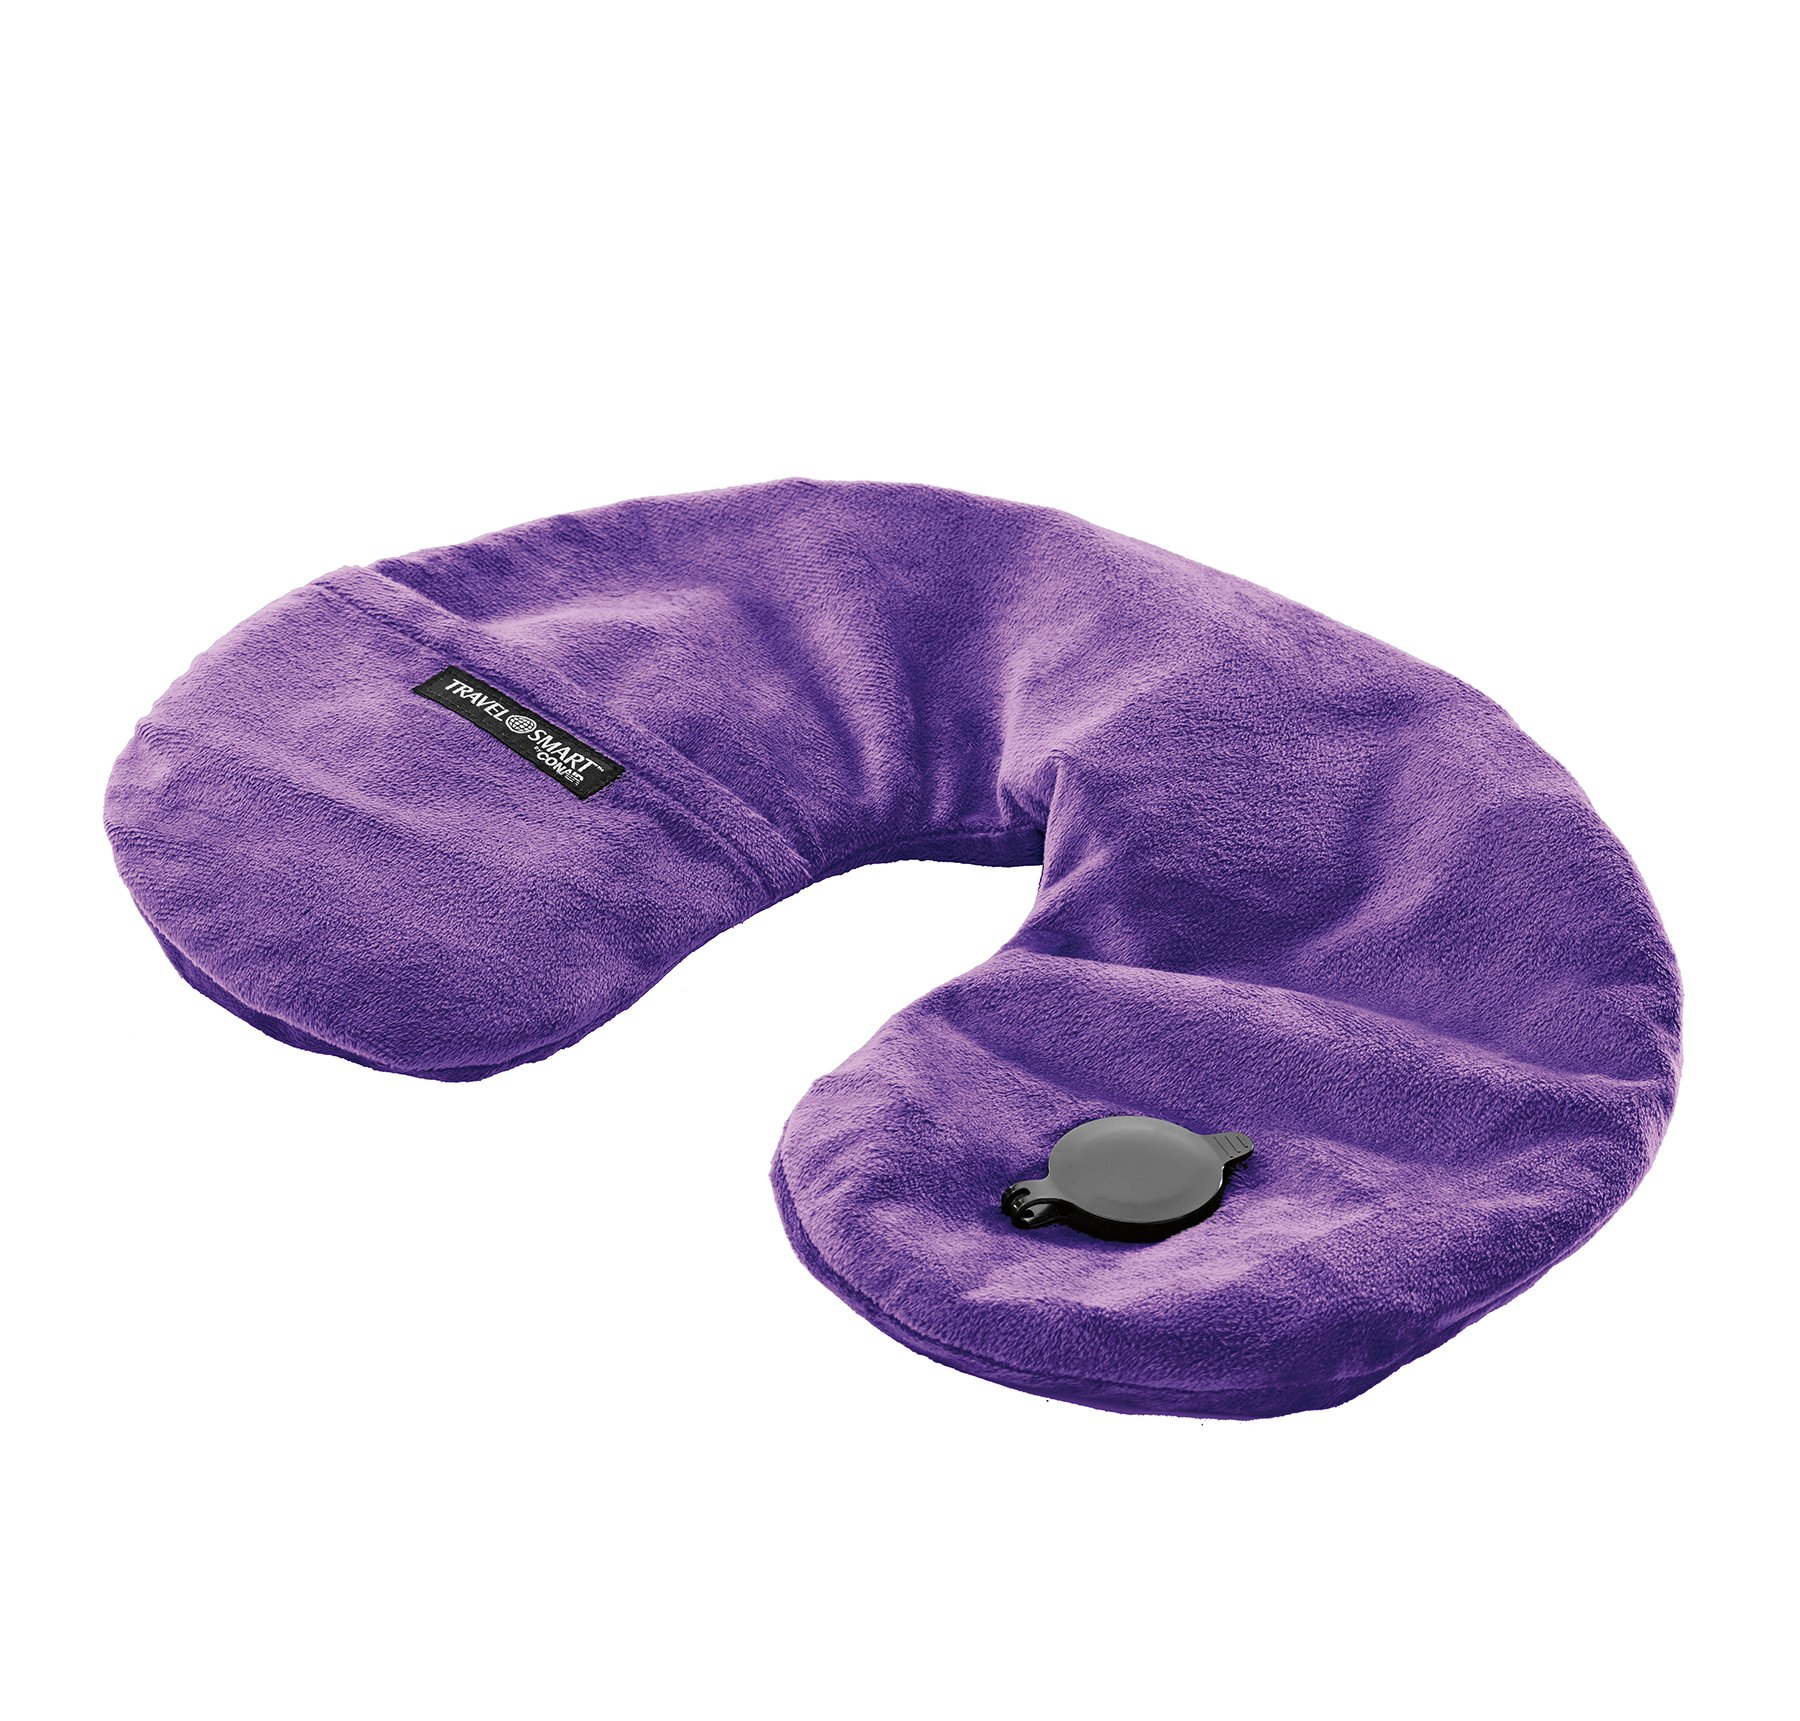 Travel Smart By Conair EZ Inflate Fleece Neck Pillow, Purple by Conair (Image #2)